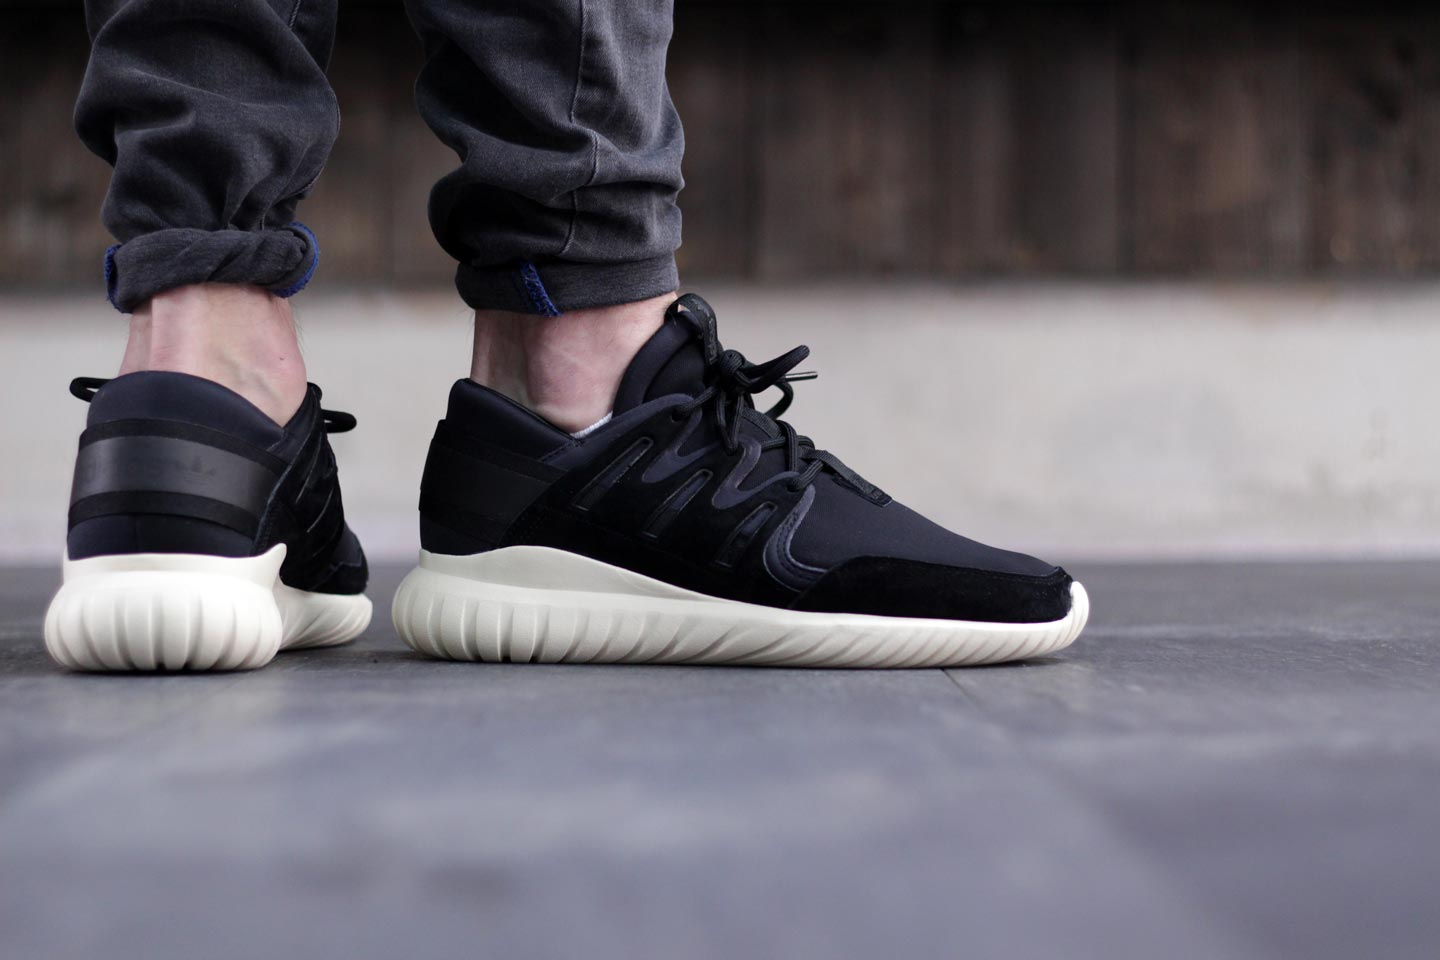 Adidas Tubular Nova Primeknit Shoes Orange adidas Regional